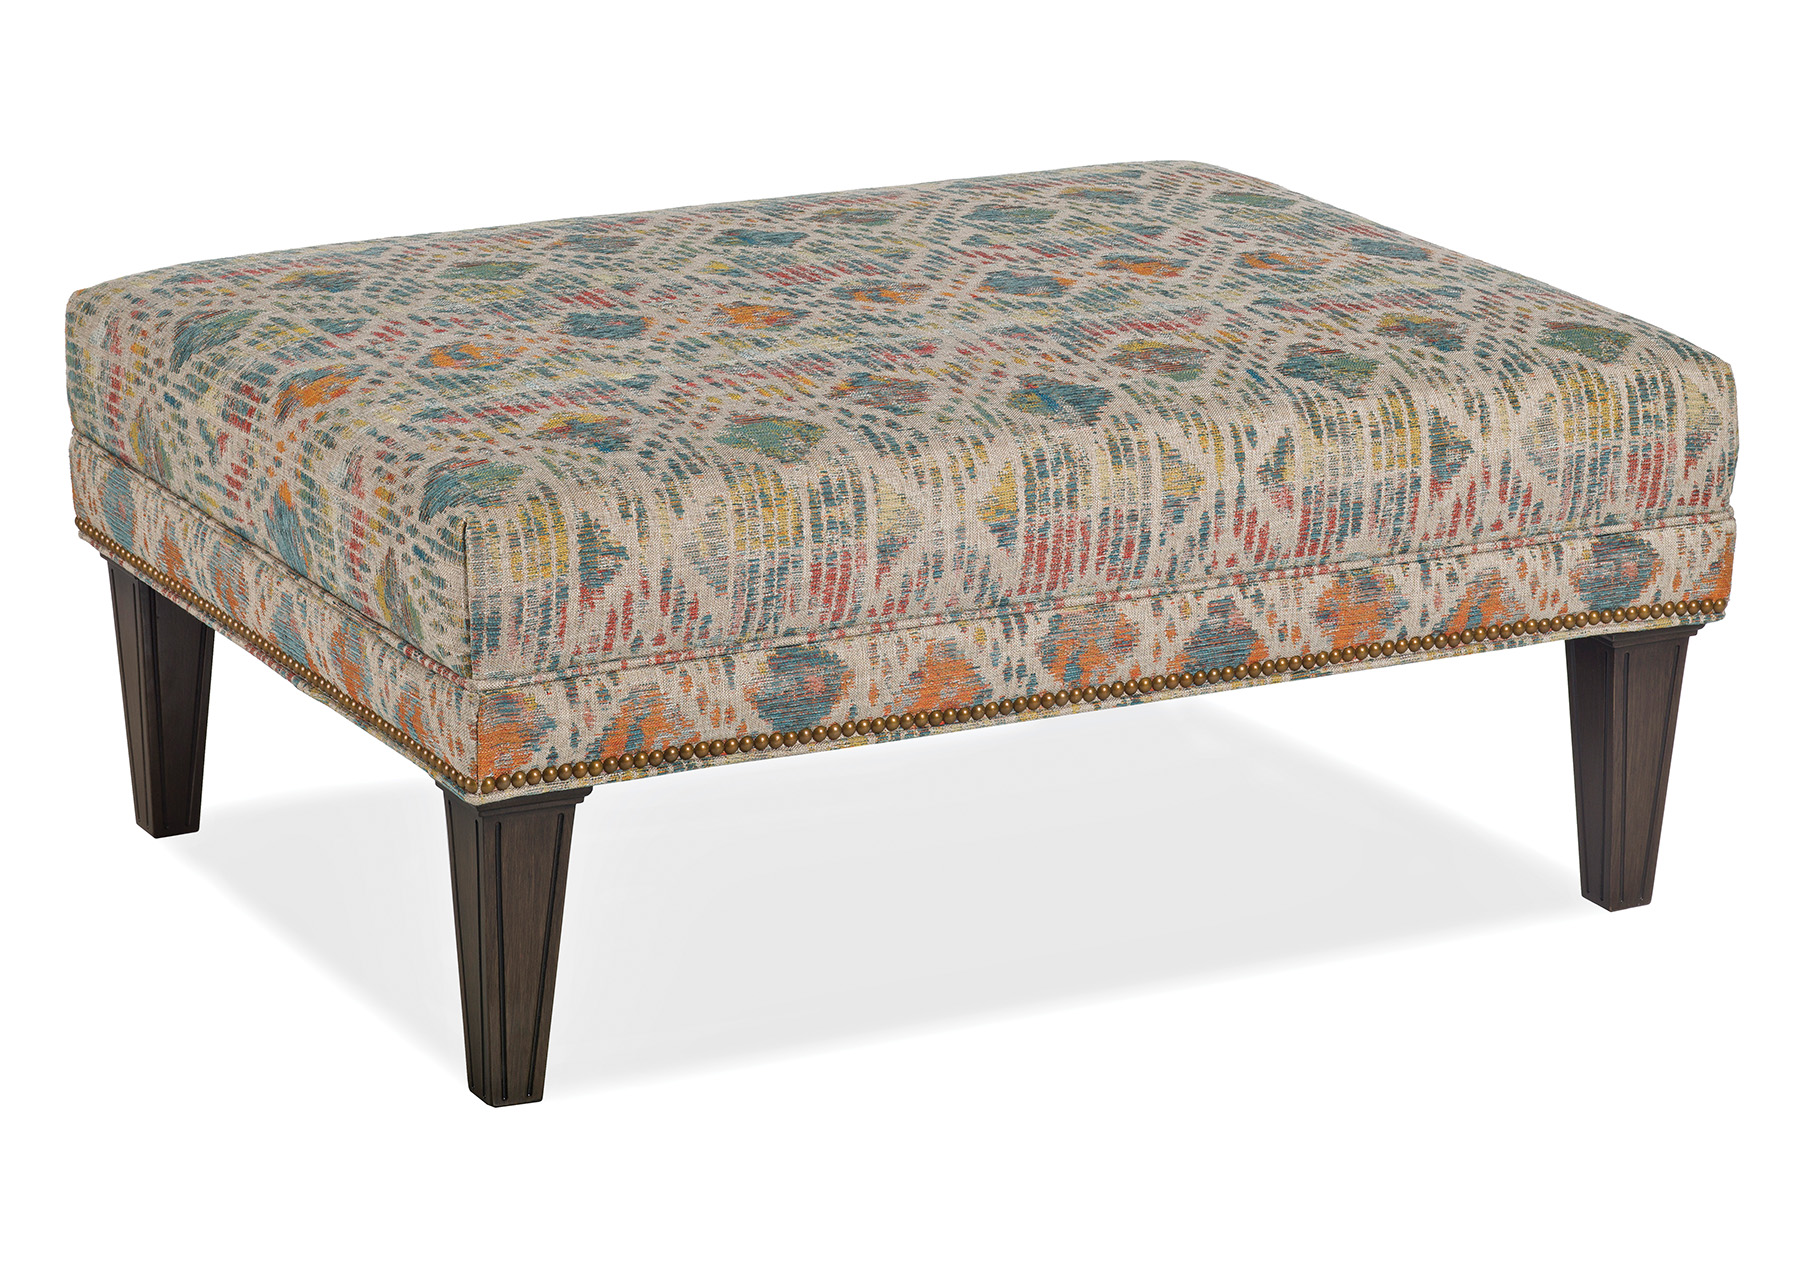 Hancock & Moore Your Way ottoman